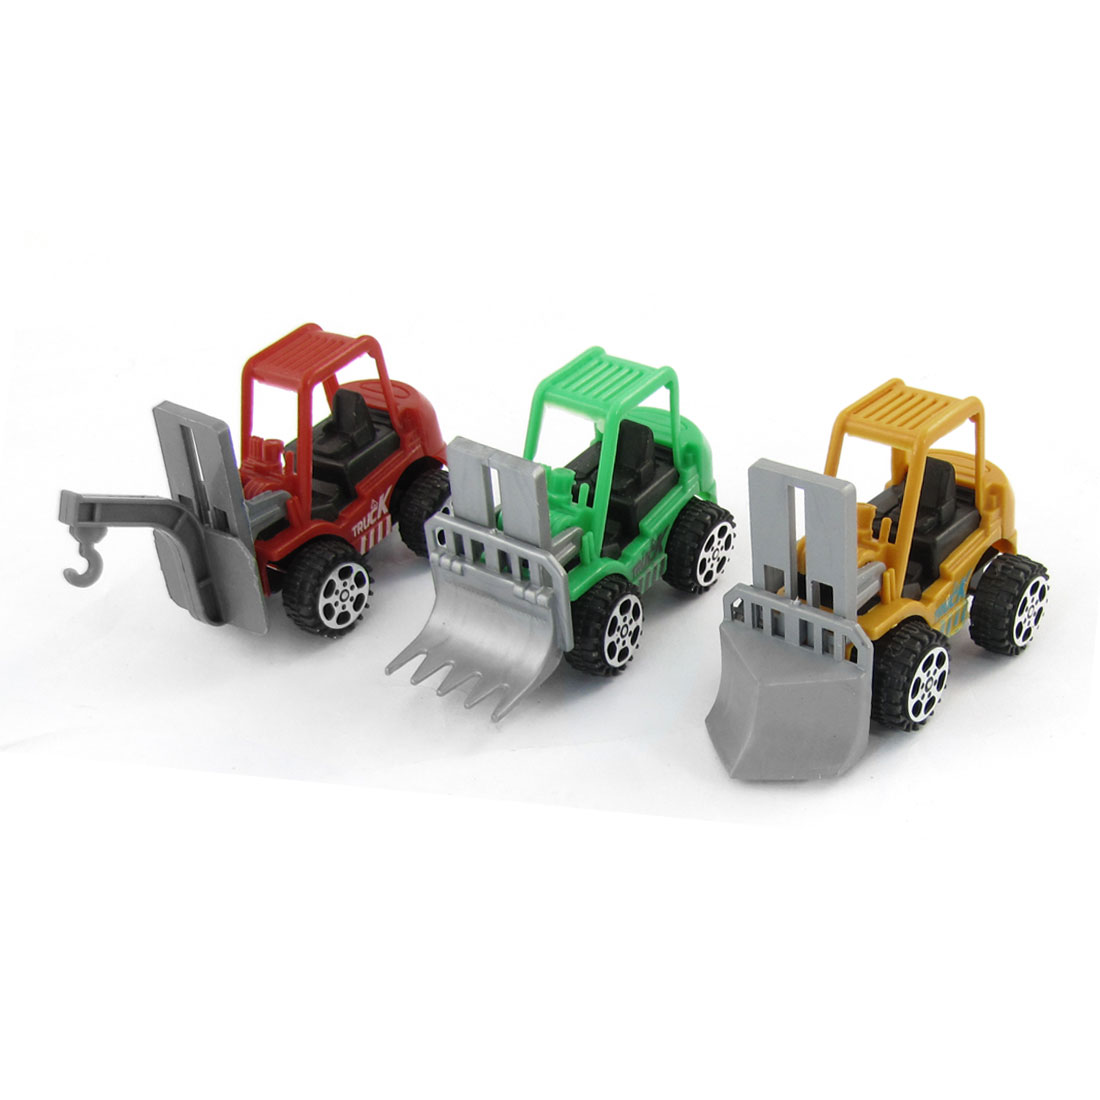 Children Red Green Yellow Body Plastic Engineering Truck Cars Toy 3 in 1 Set